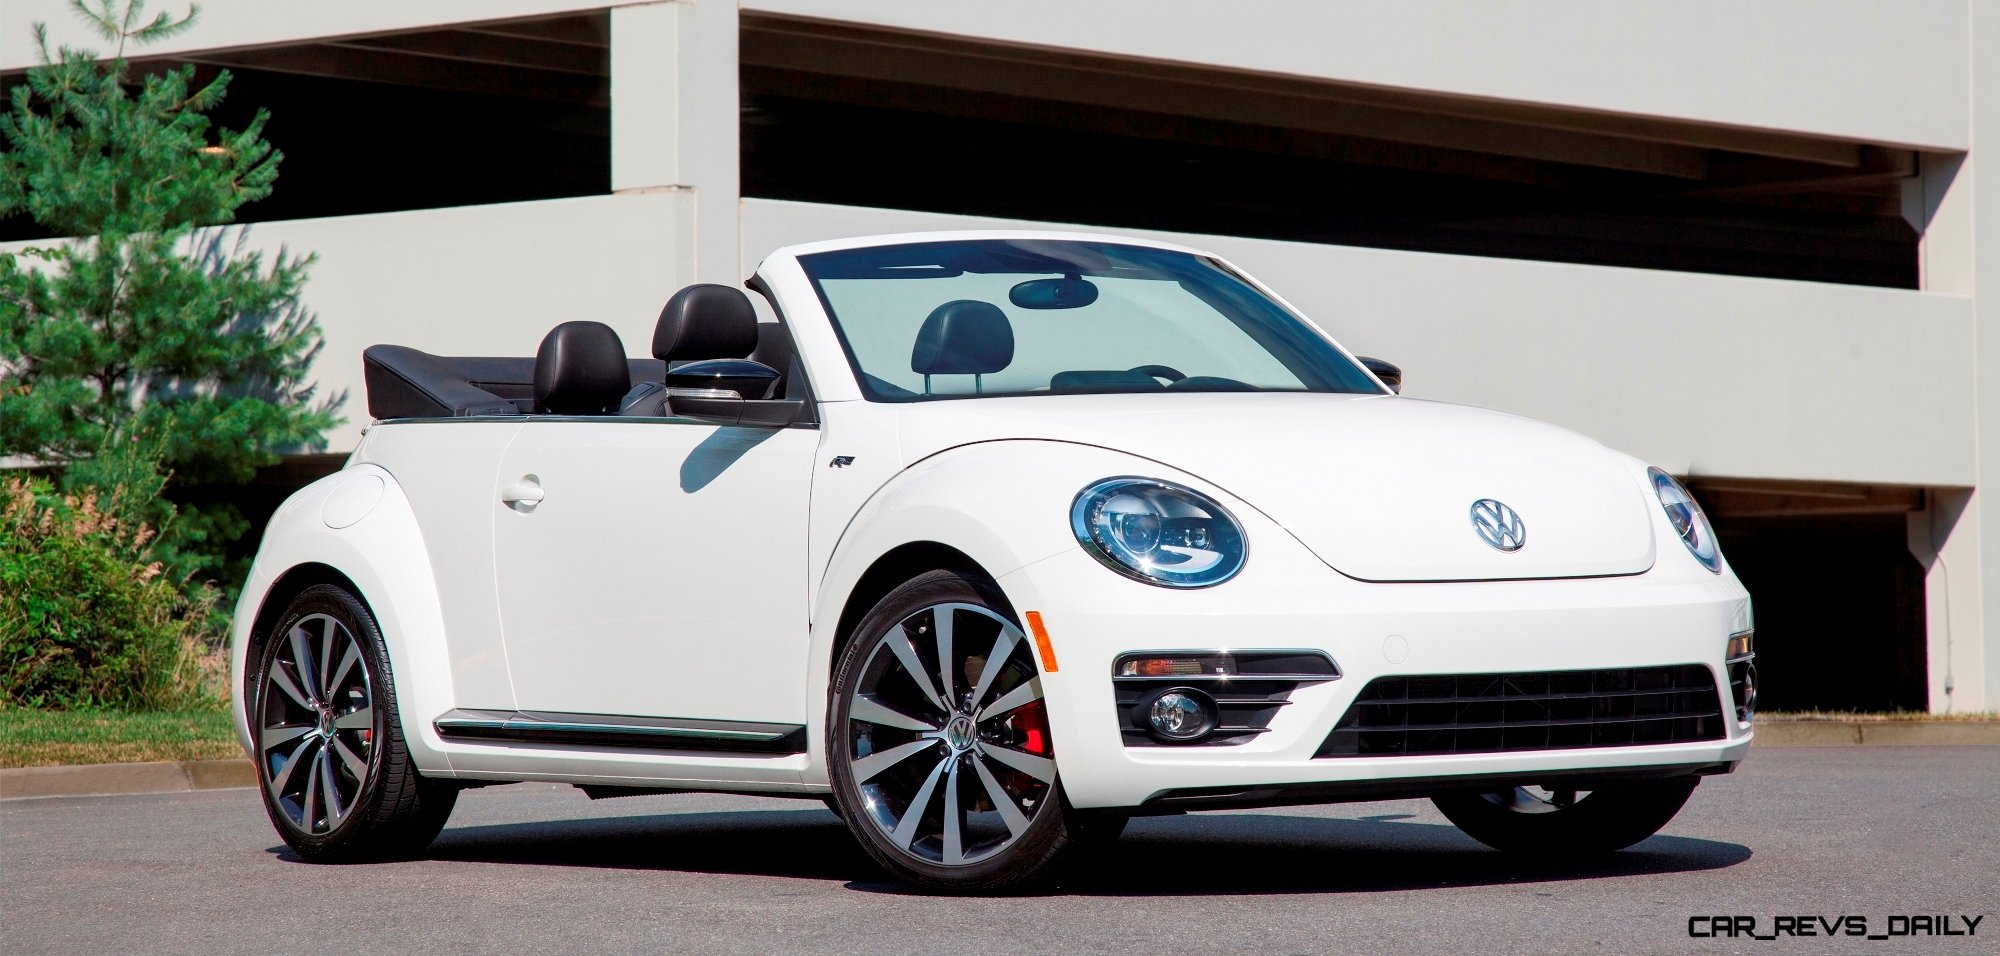 CarRevsDaily.com 2014 Beetle R line Cab 5 photo